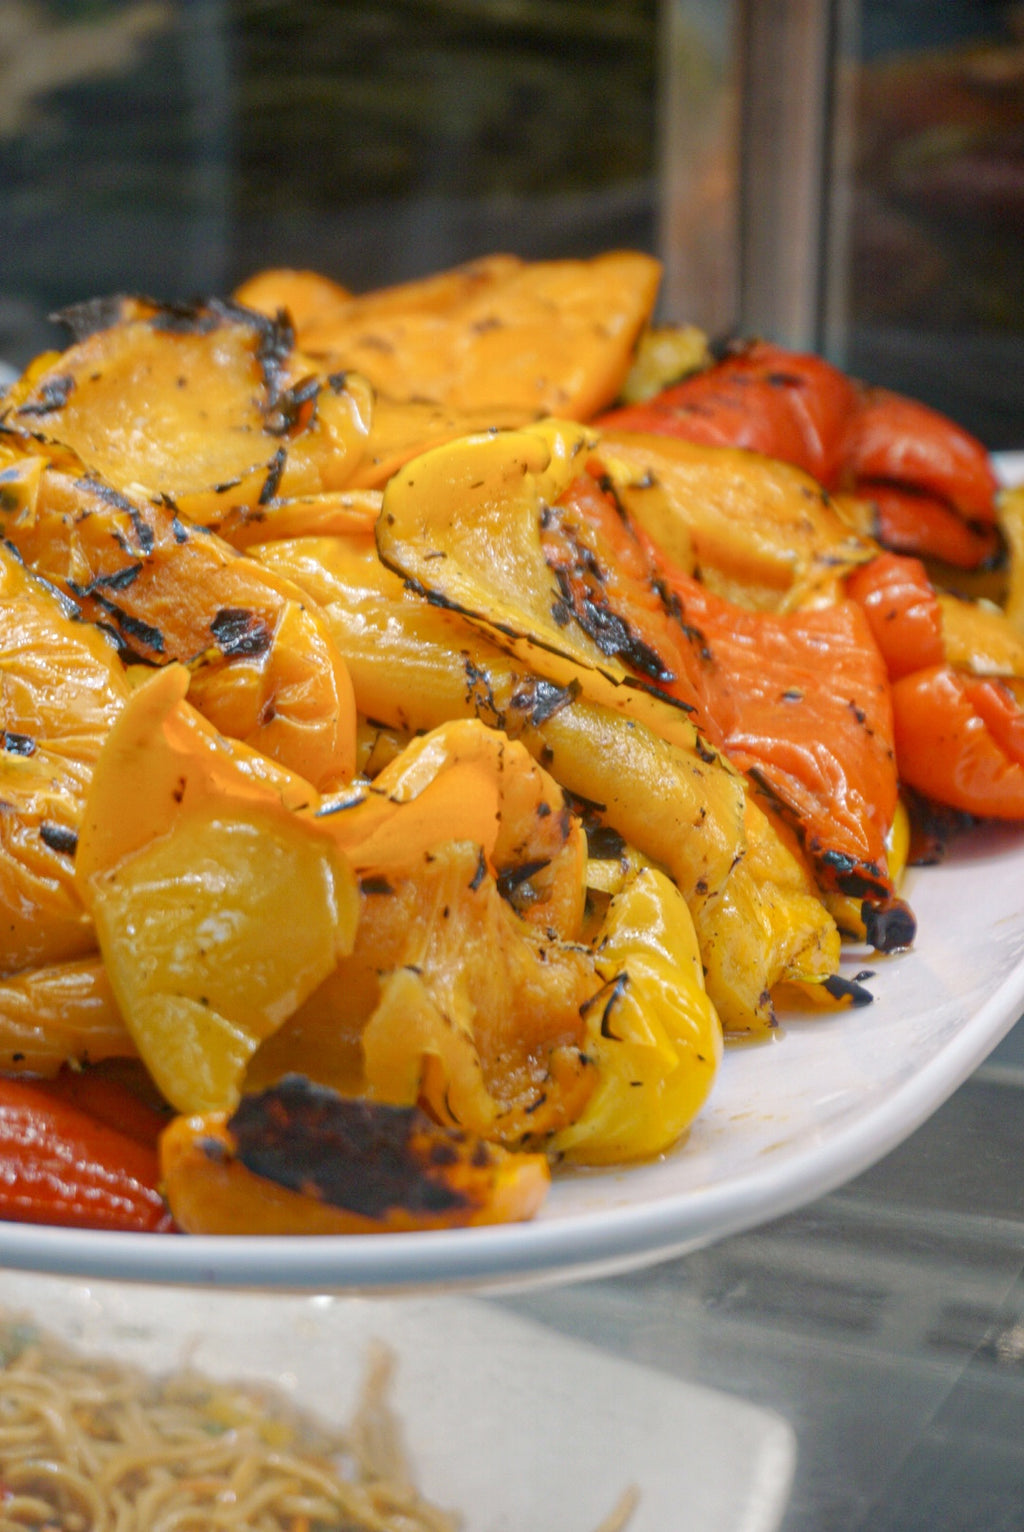 Grilled Vegetables - New Canaan